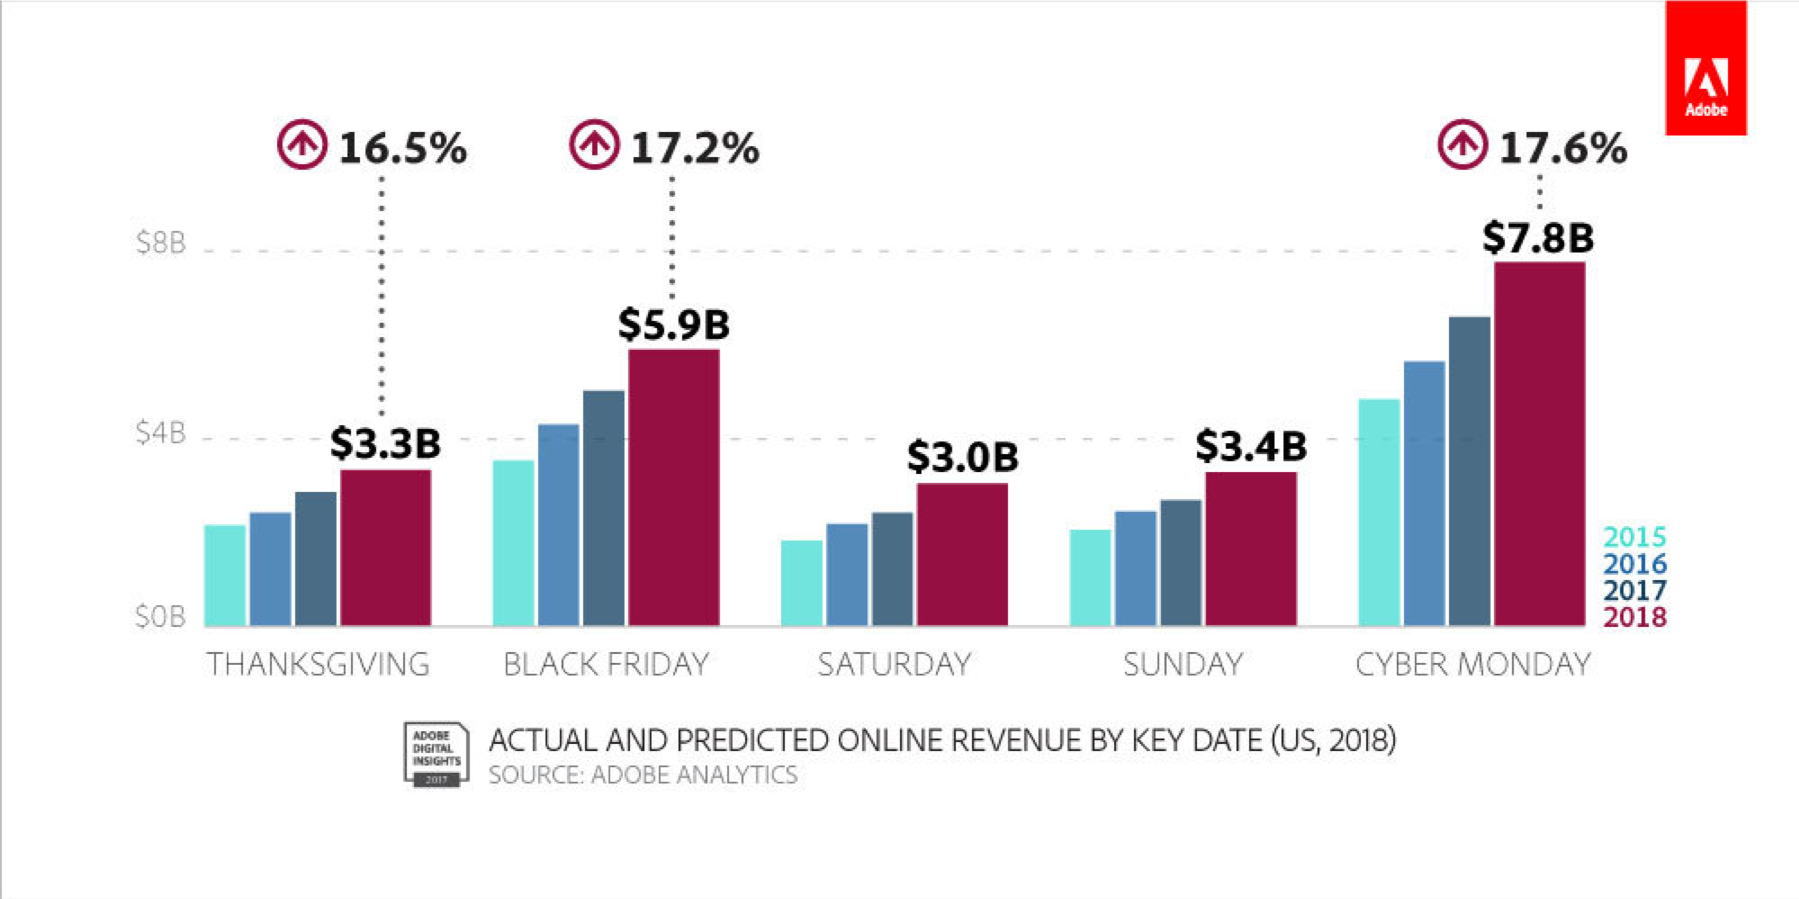 Actual and Predicted Online Revenue